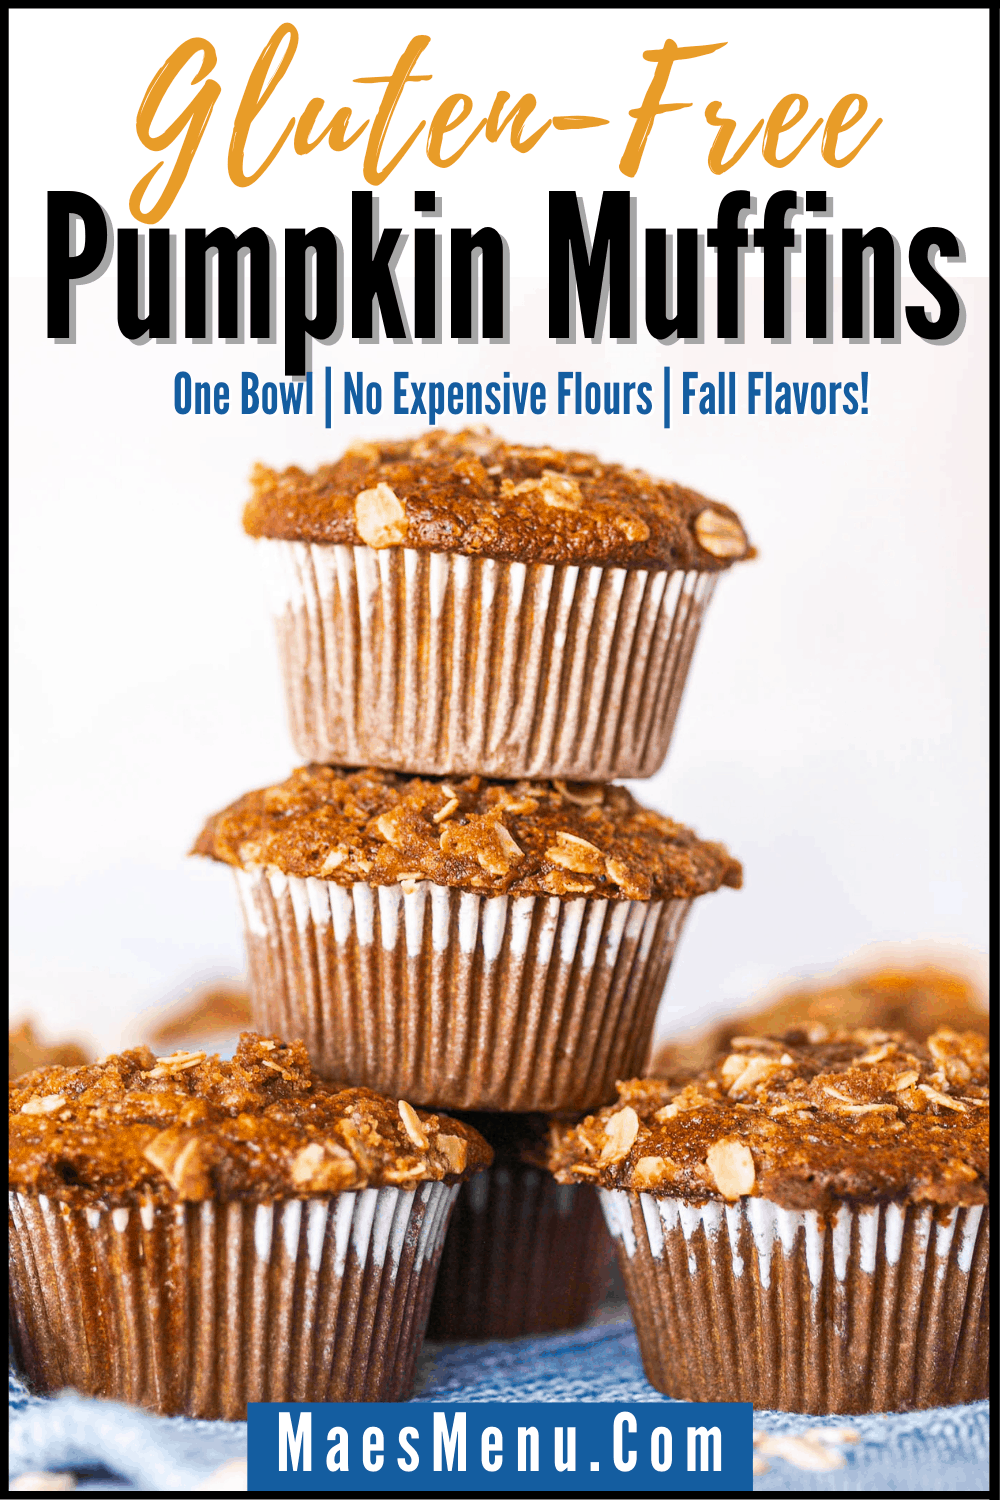 A pinterest pin for gluten-free pumpkin muffins with a picture of a stack of the muffins